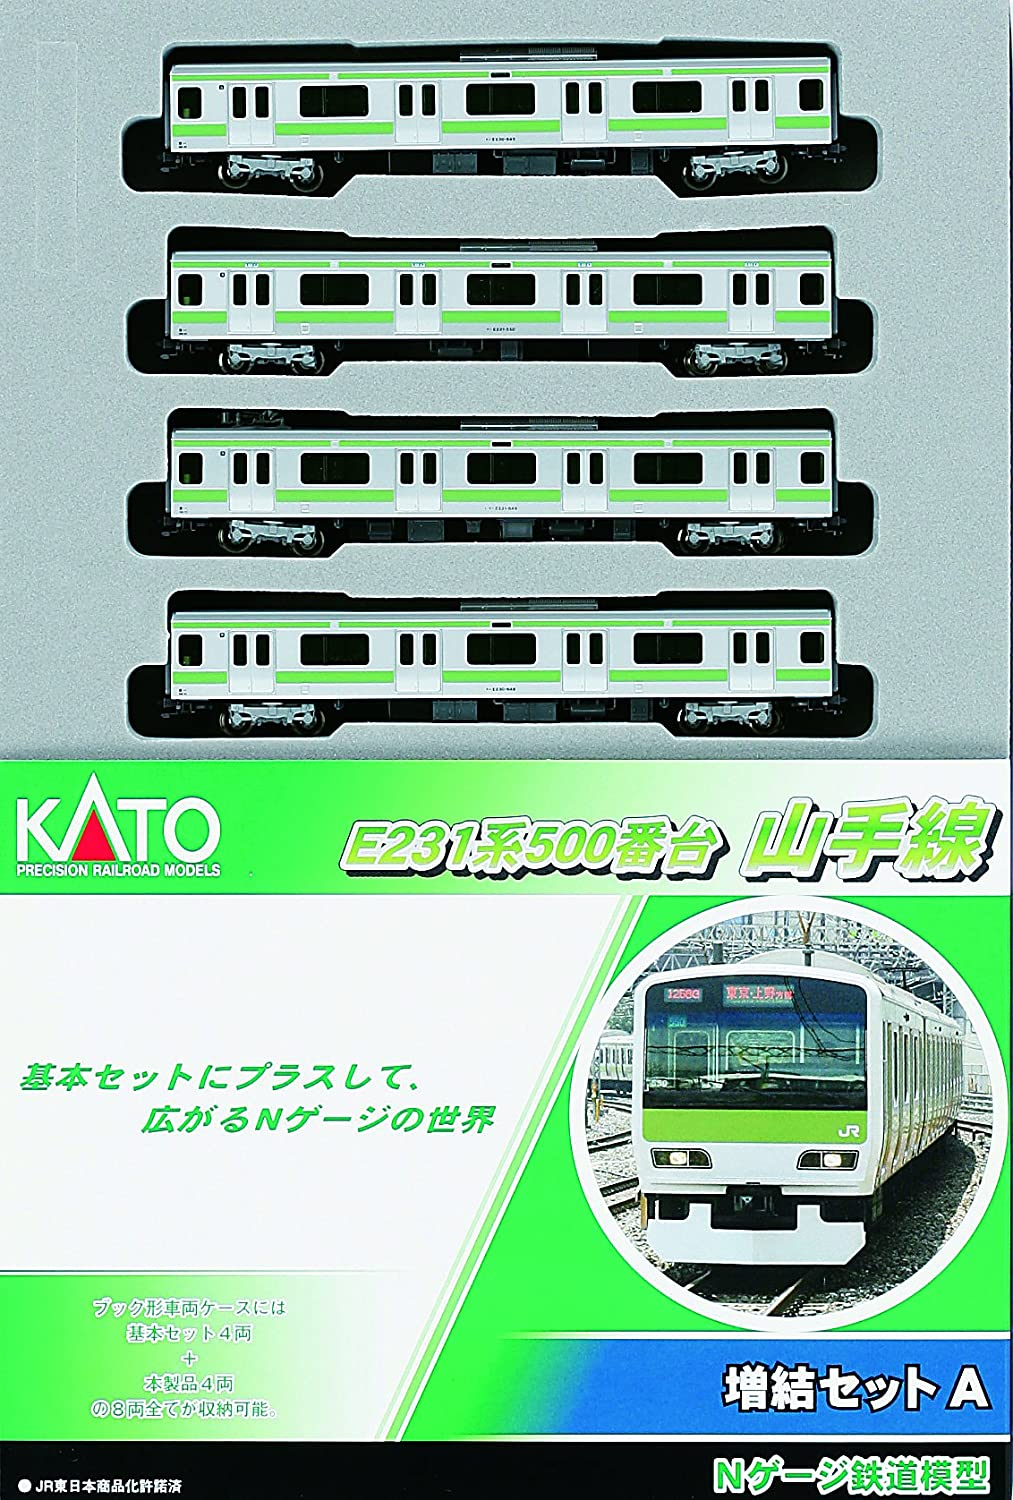 Kato 10-579 E231 500 Yamanote Line 4 Car Add On Set